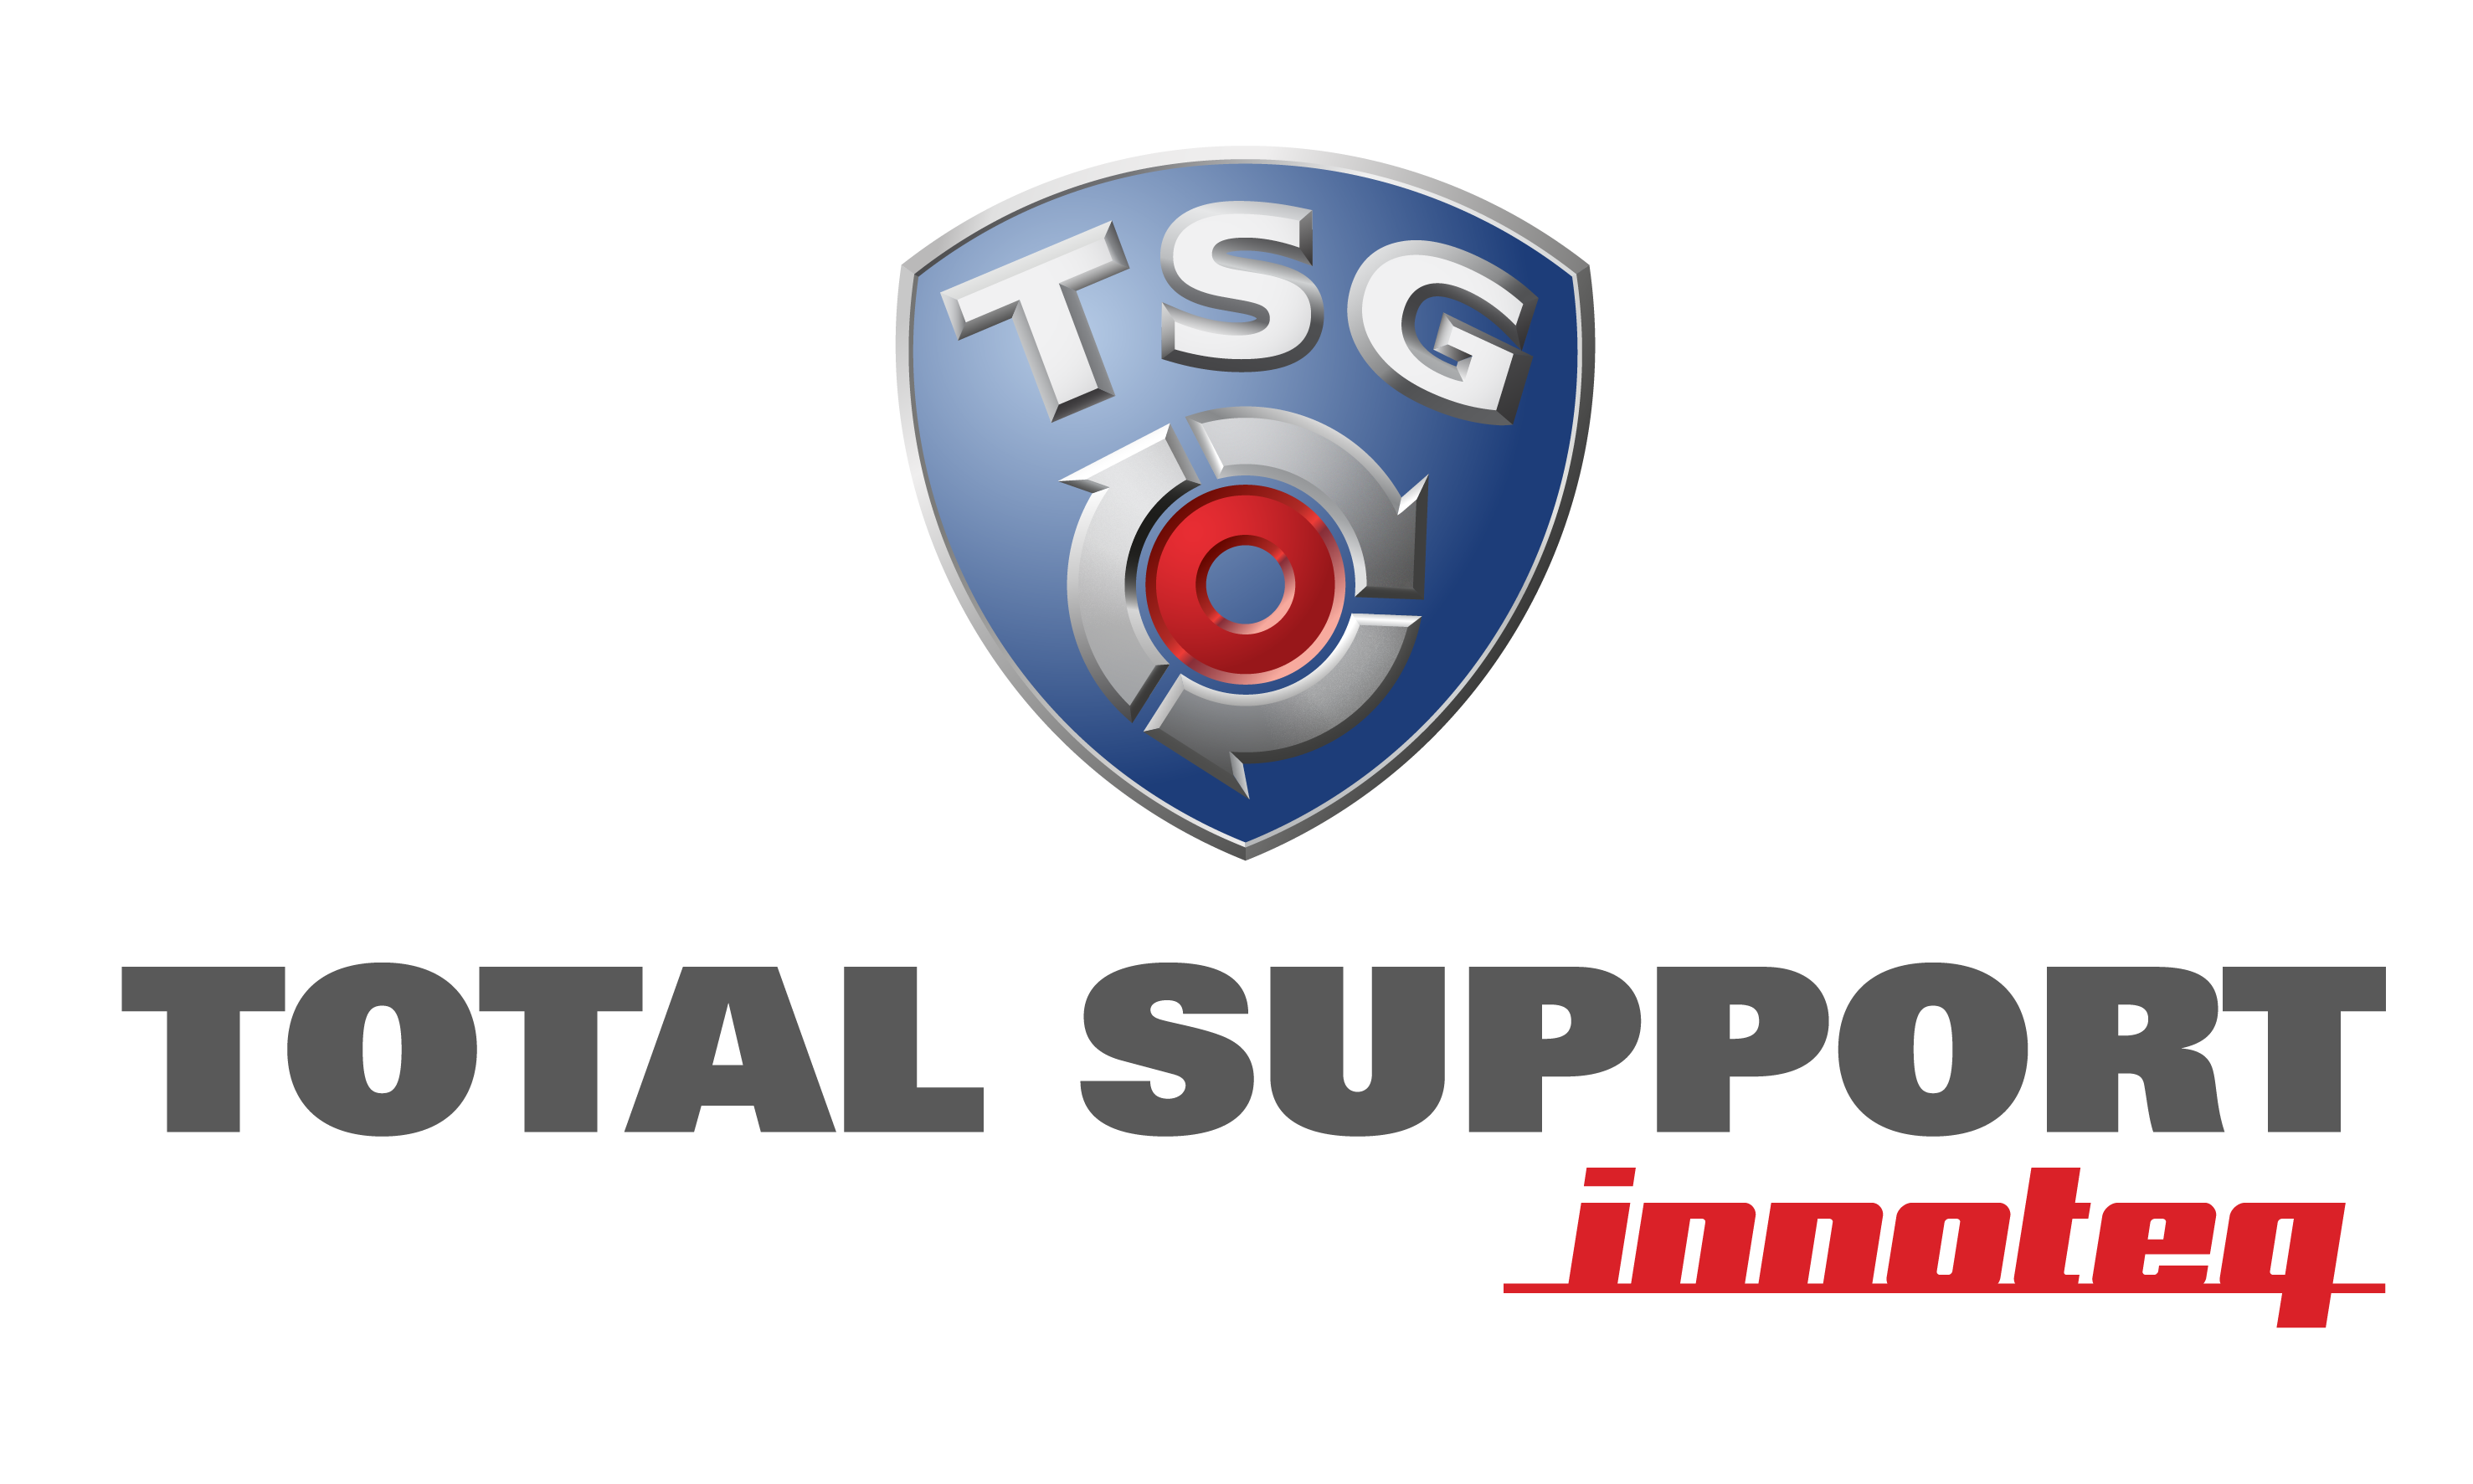 partner logo 04 - TSG Group